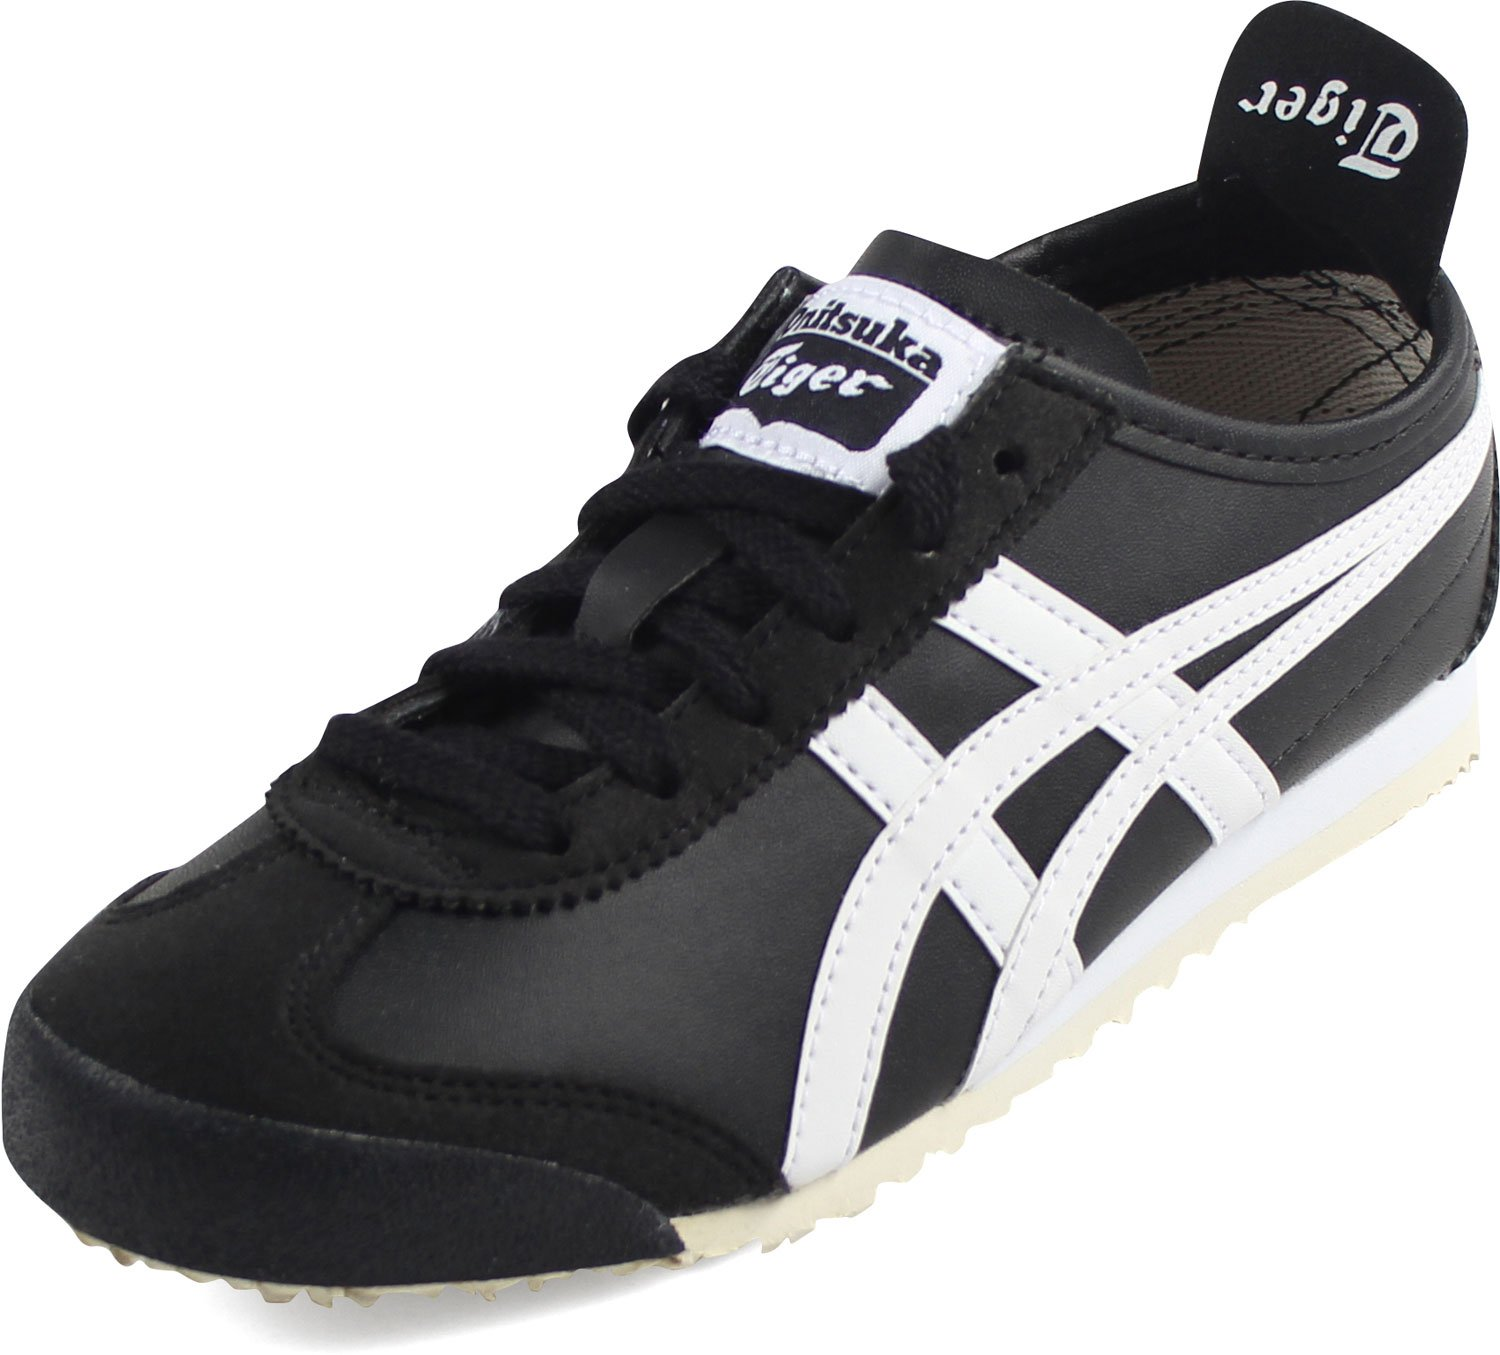 pretty nice 168b5 e678a Onitsuka Tiger Kids by Asics Boy's Mexico 66 PS (Little Kid) Black/White 1  Little Kid M